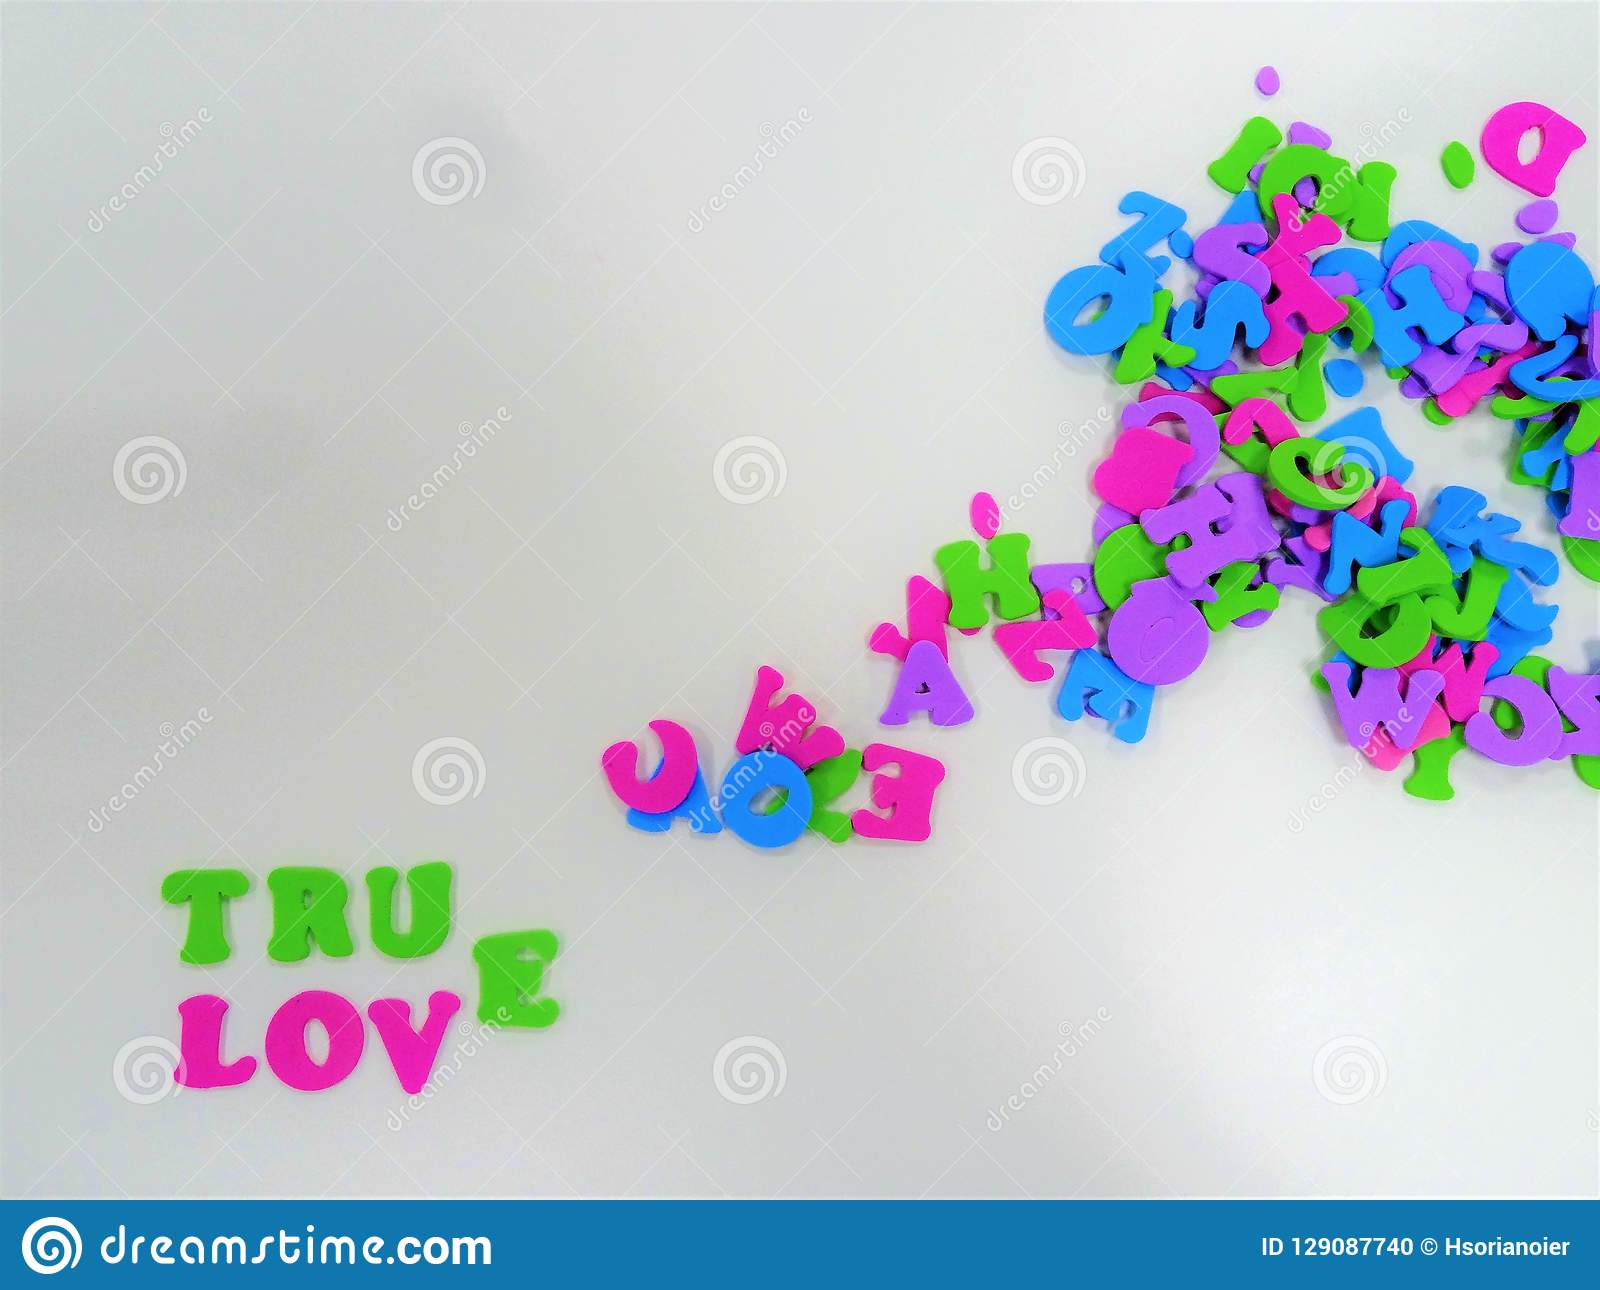 True Love Frame For Writting A Message Space For Writting Stock